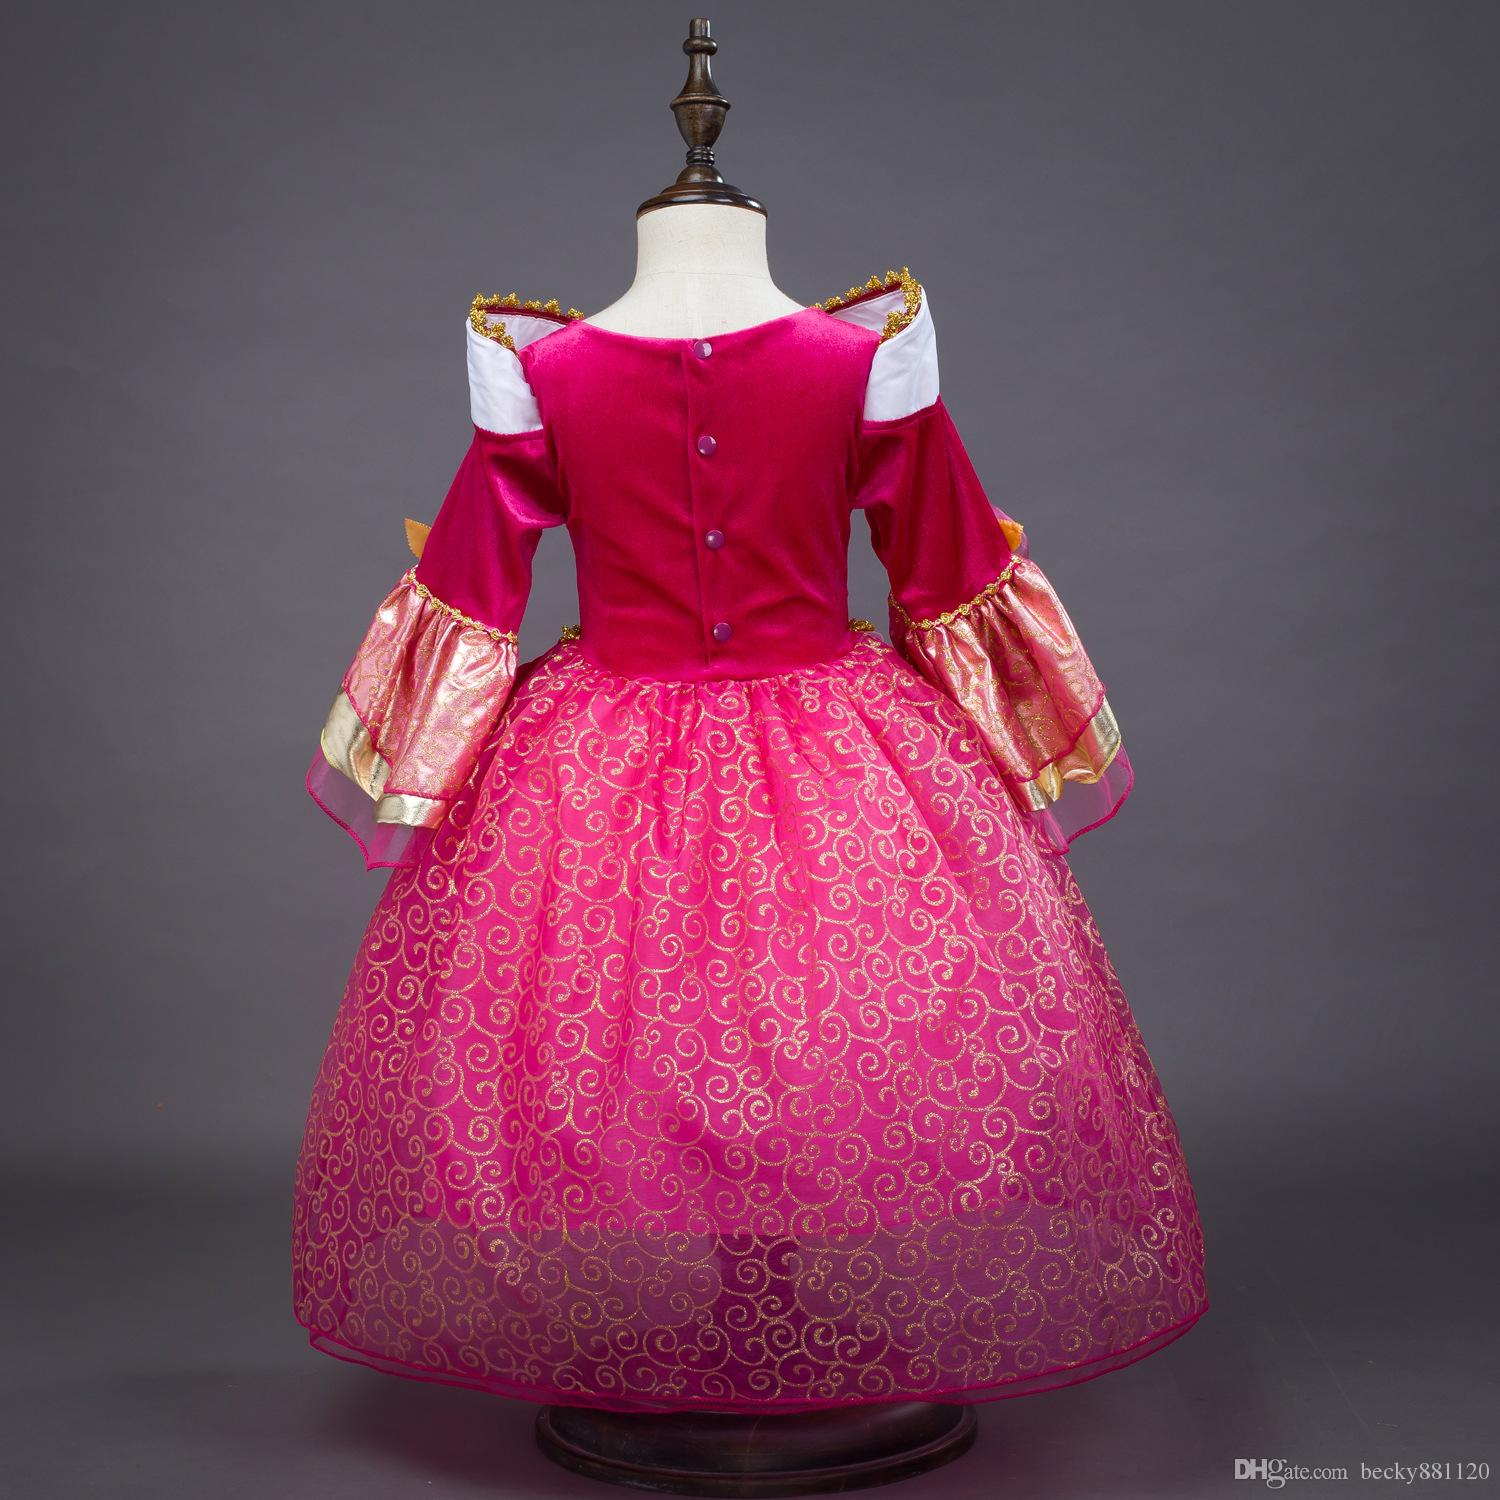 Halloween Cosplay Sleeping Beauty Aurora Princess Skirt Dresses Costumes and Children For Christmas New Year Wholesale